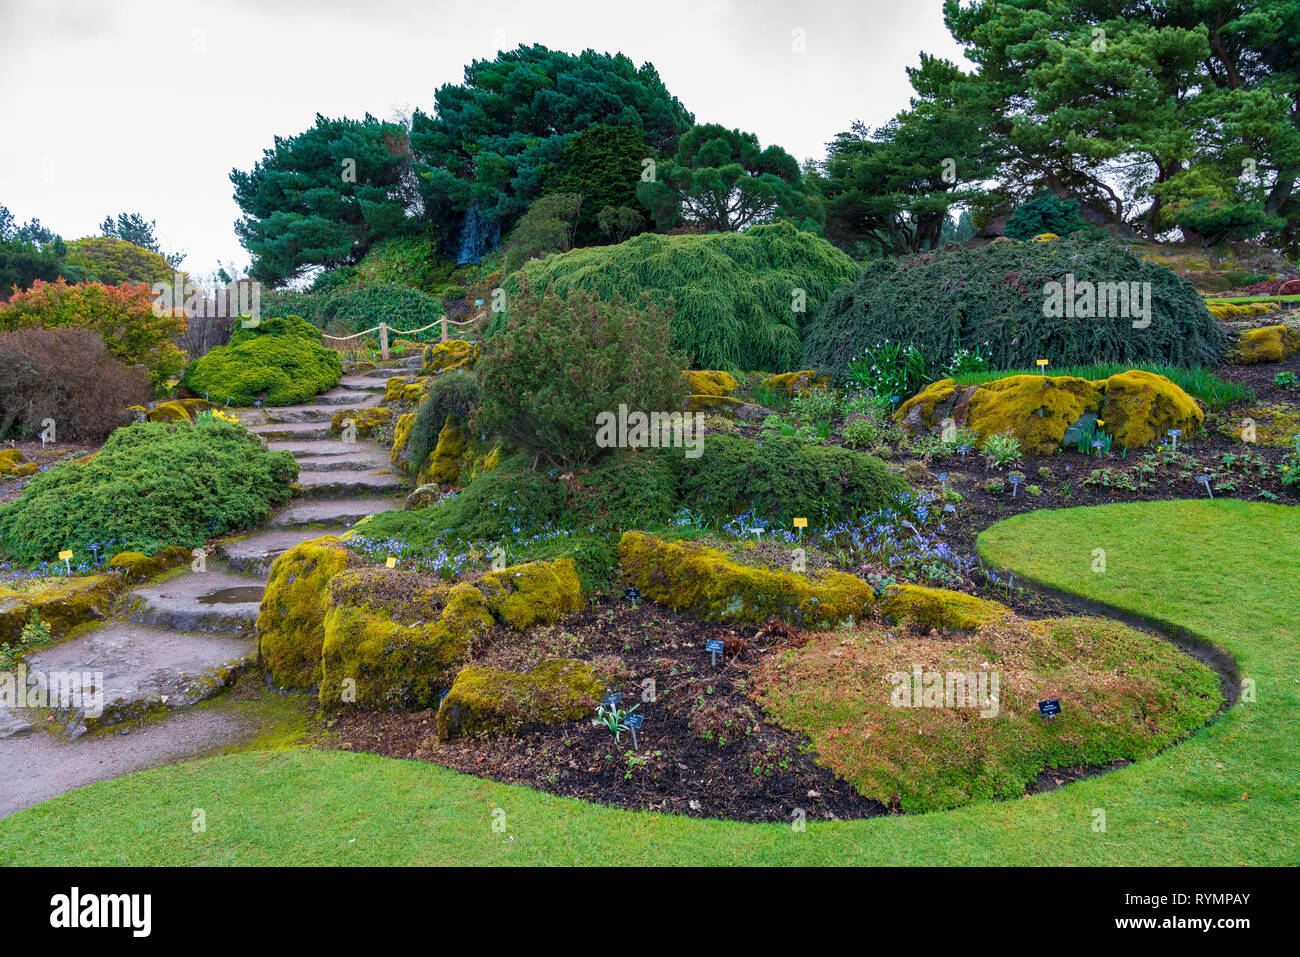 The Rock Garden a in Royal Botanic Garden Edinburgh, Scotland ,UK - Stock Image